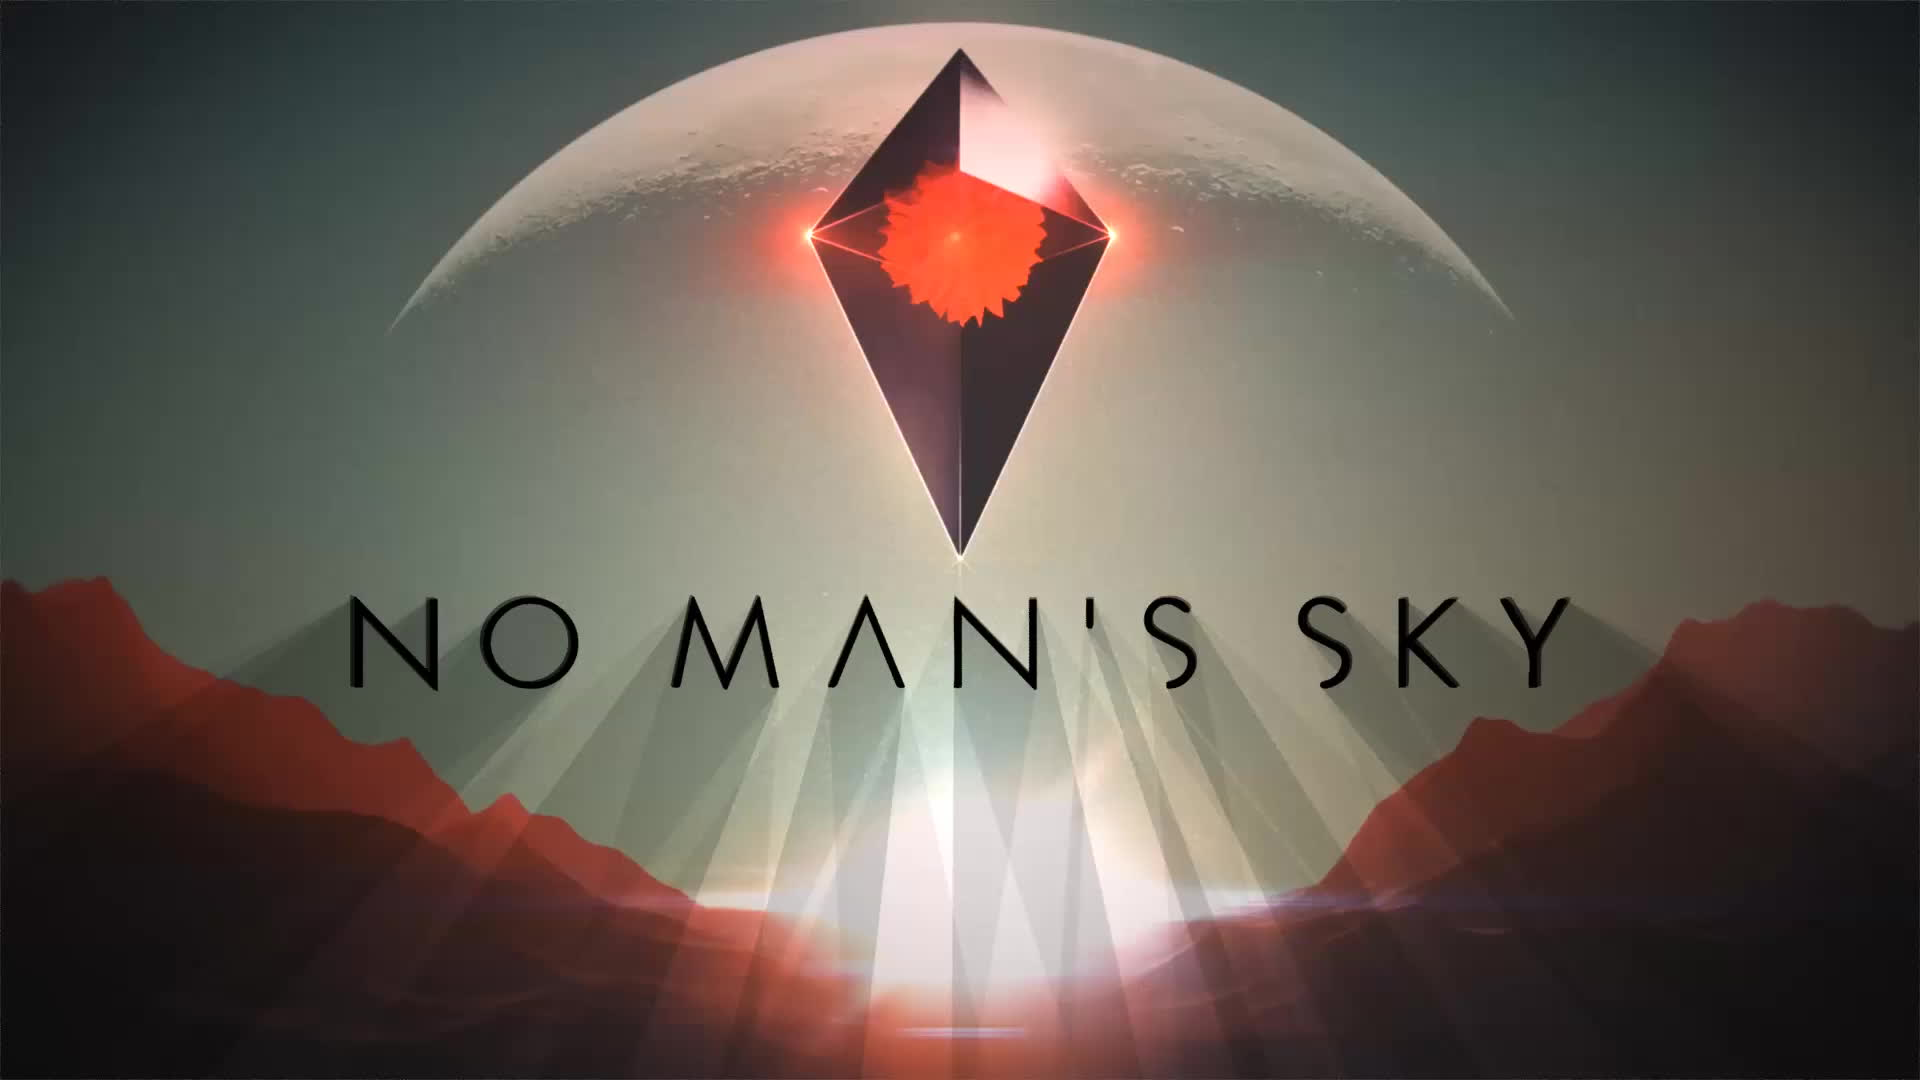 hello games, no man's sky, nomanshigh, Enhancing the No Man's Sky website animation in After Effects GIFs